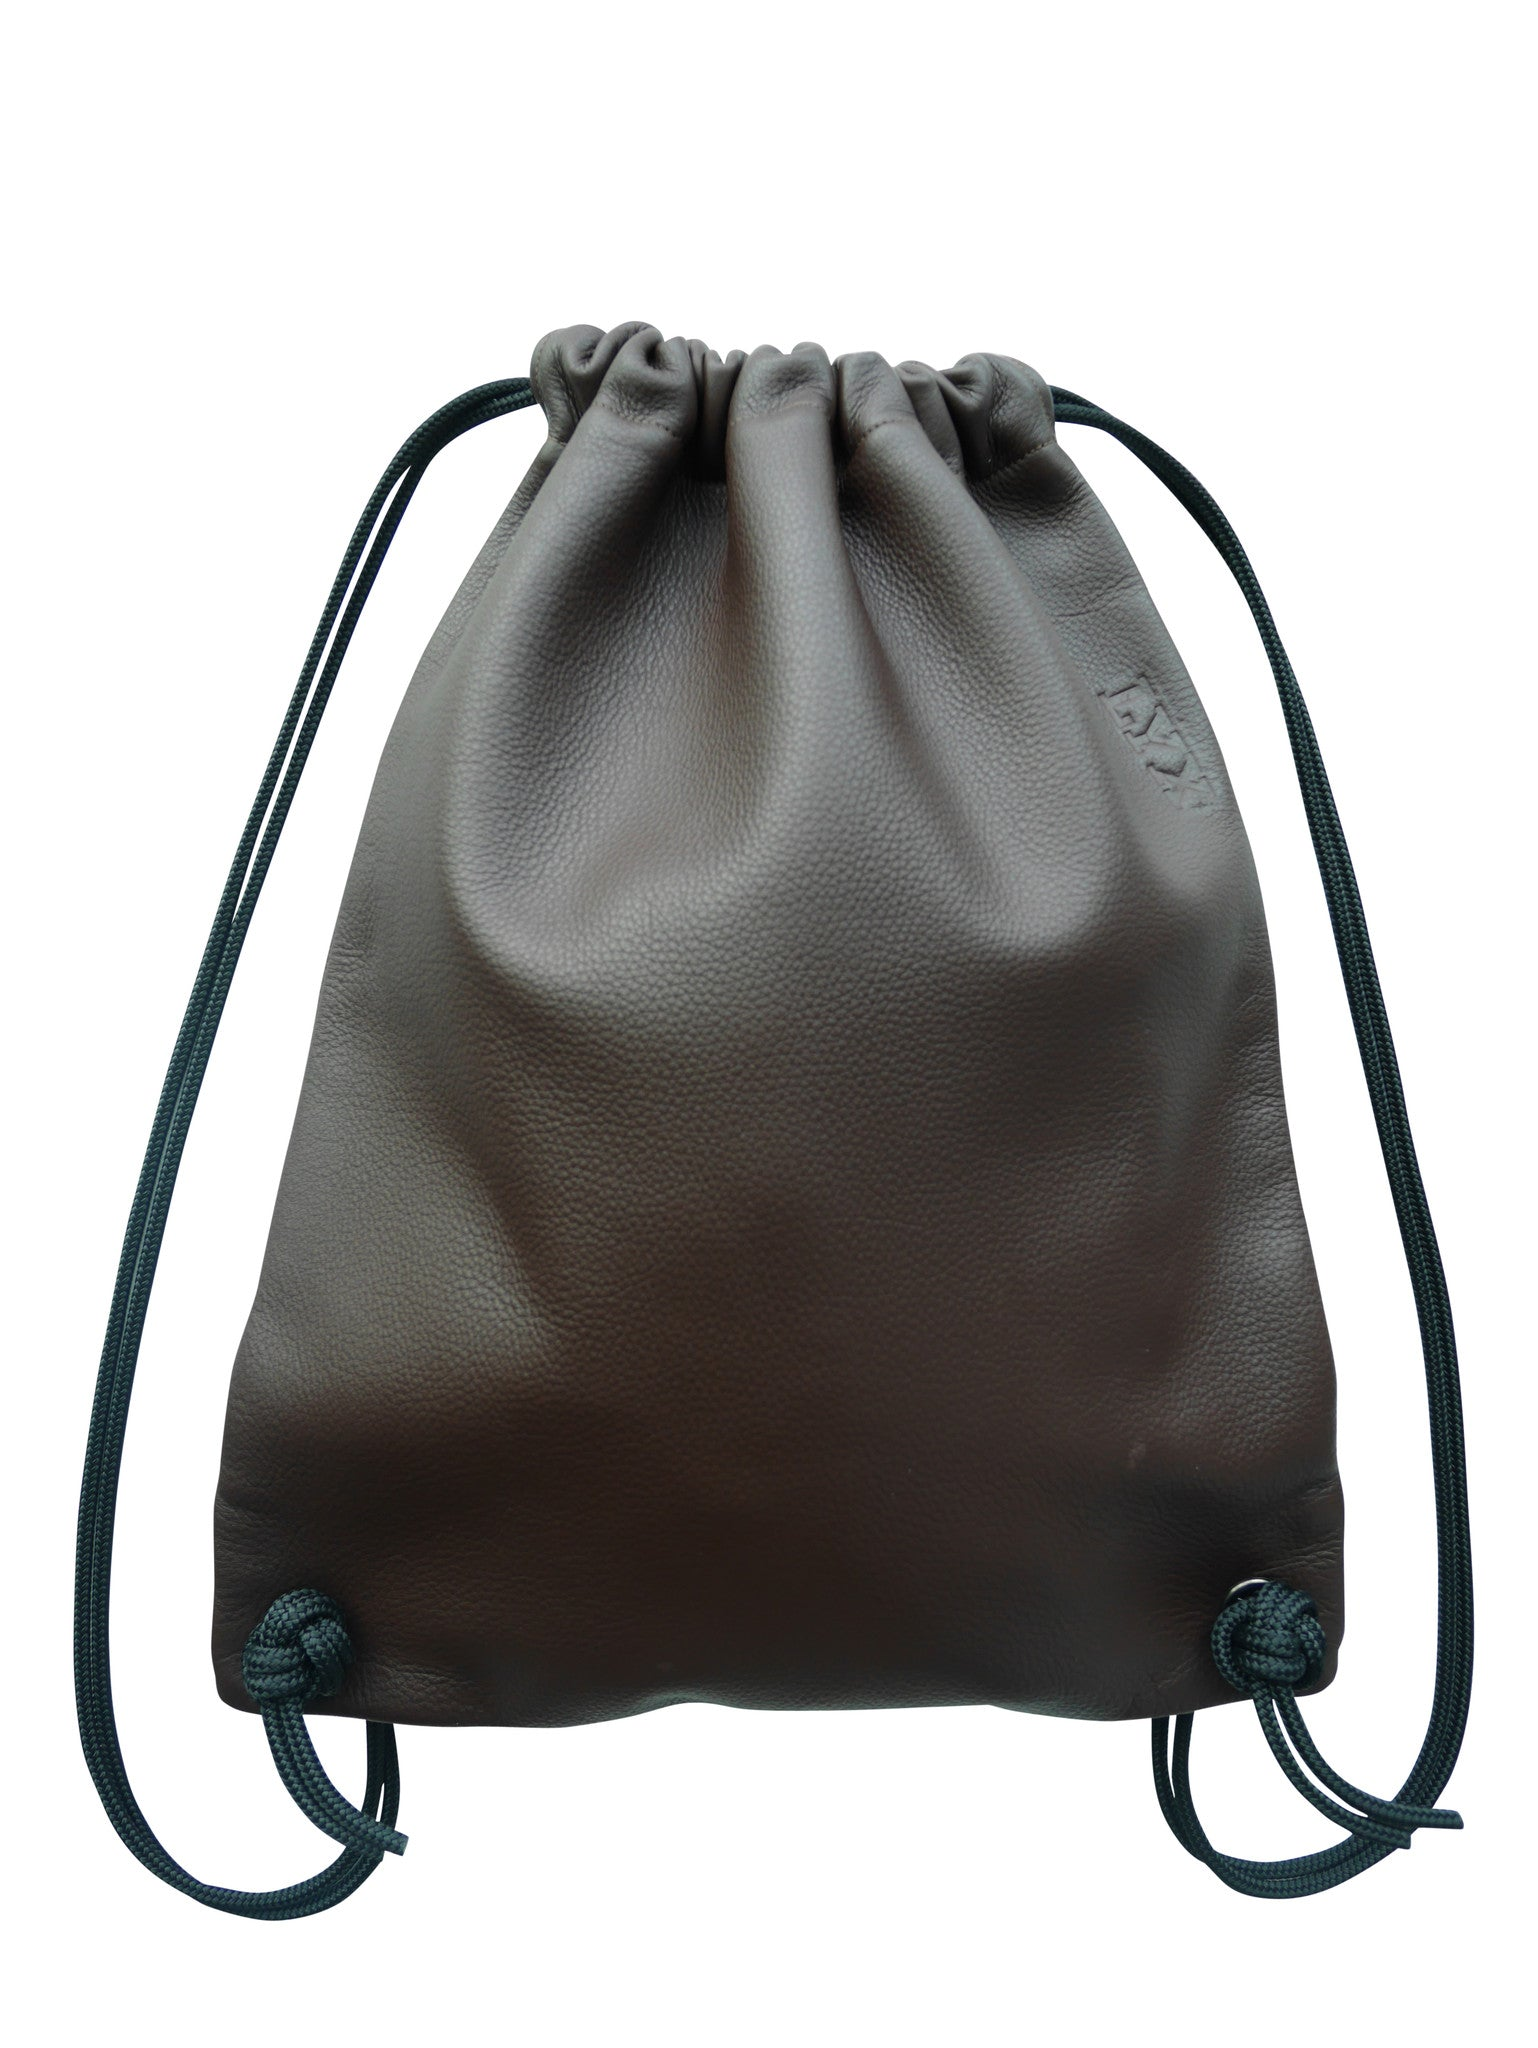 5d437295676 Oysterman drawstring bag in brown - LYX leather